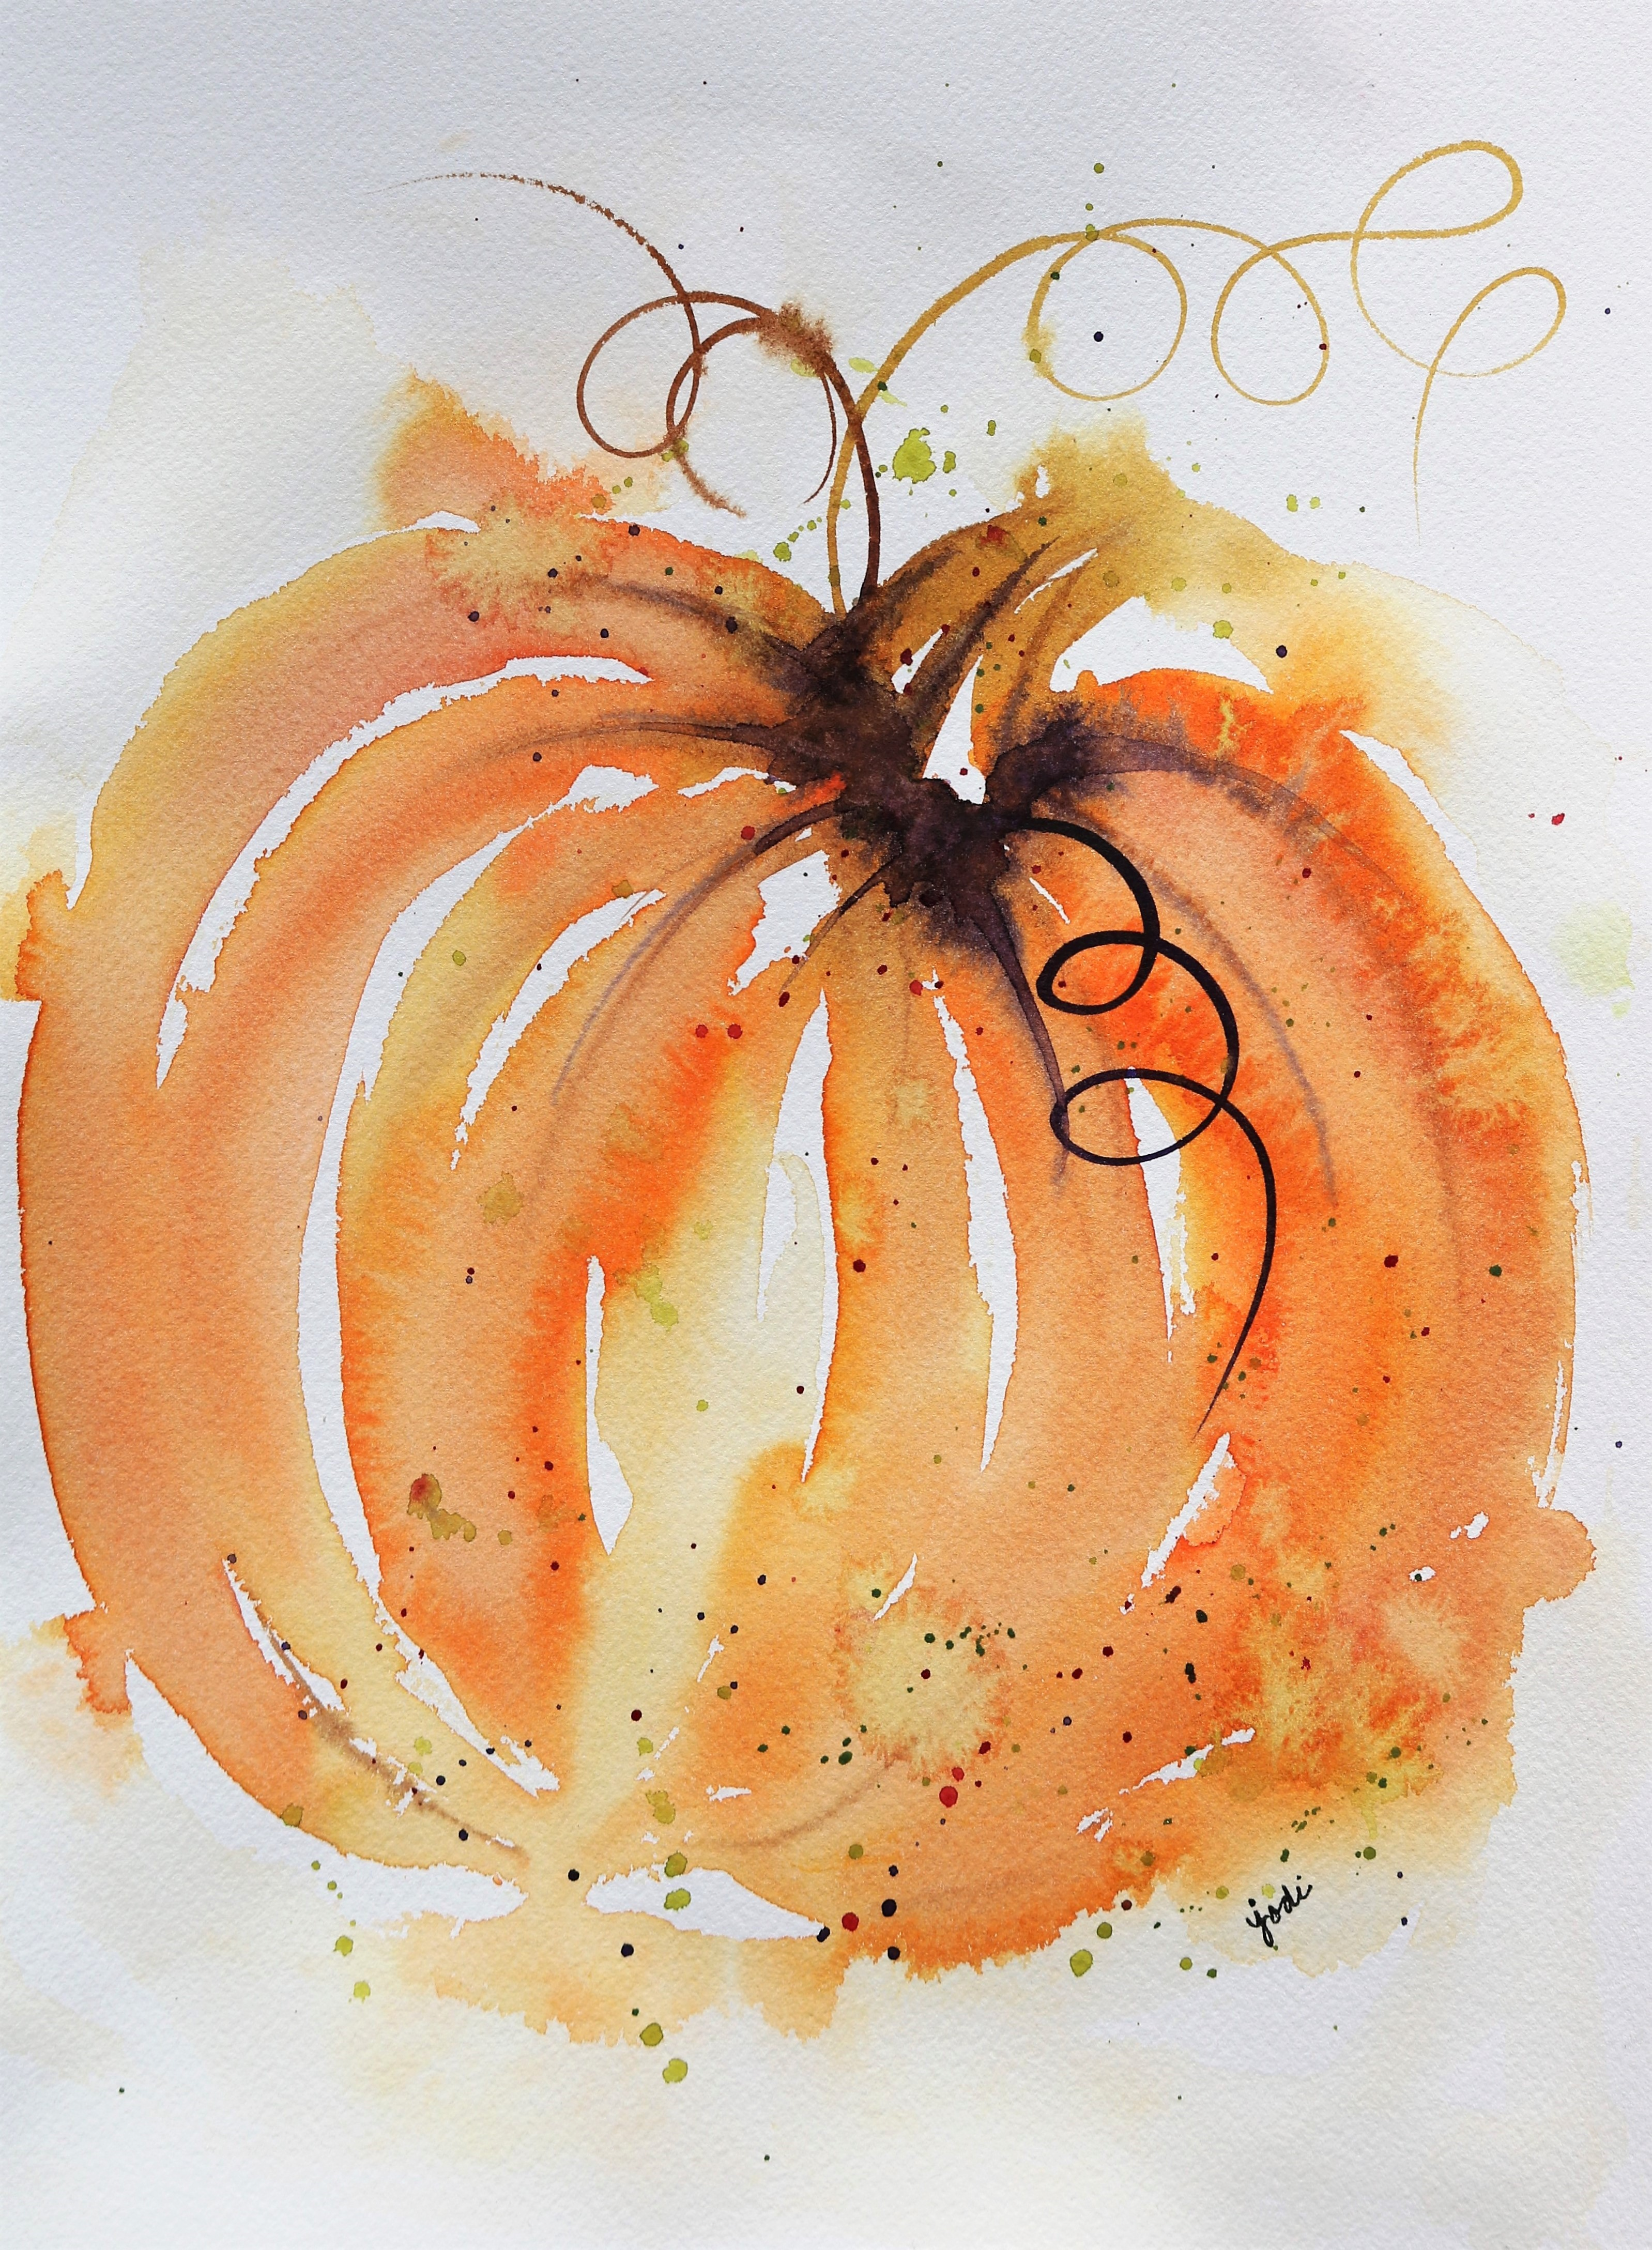 Wall Colour Inspiration: Creative Inspiration In Food, Watercolor, Photography